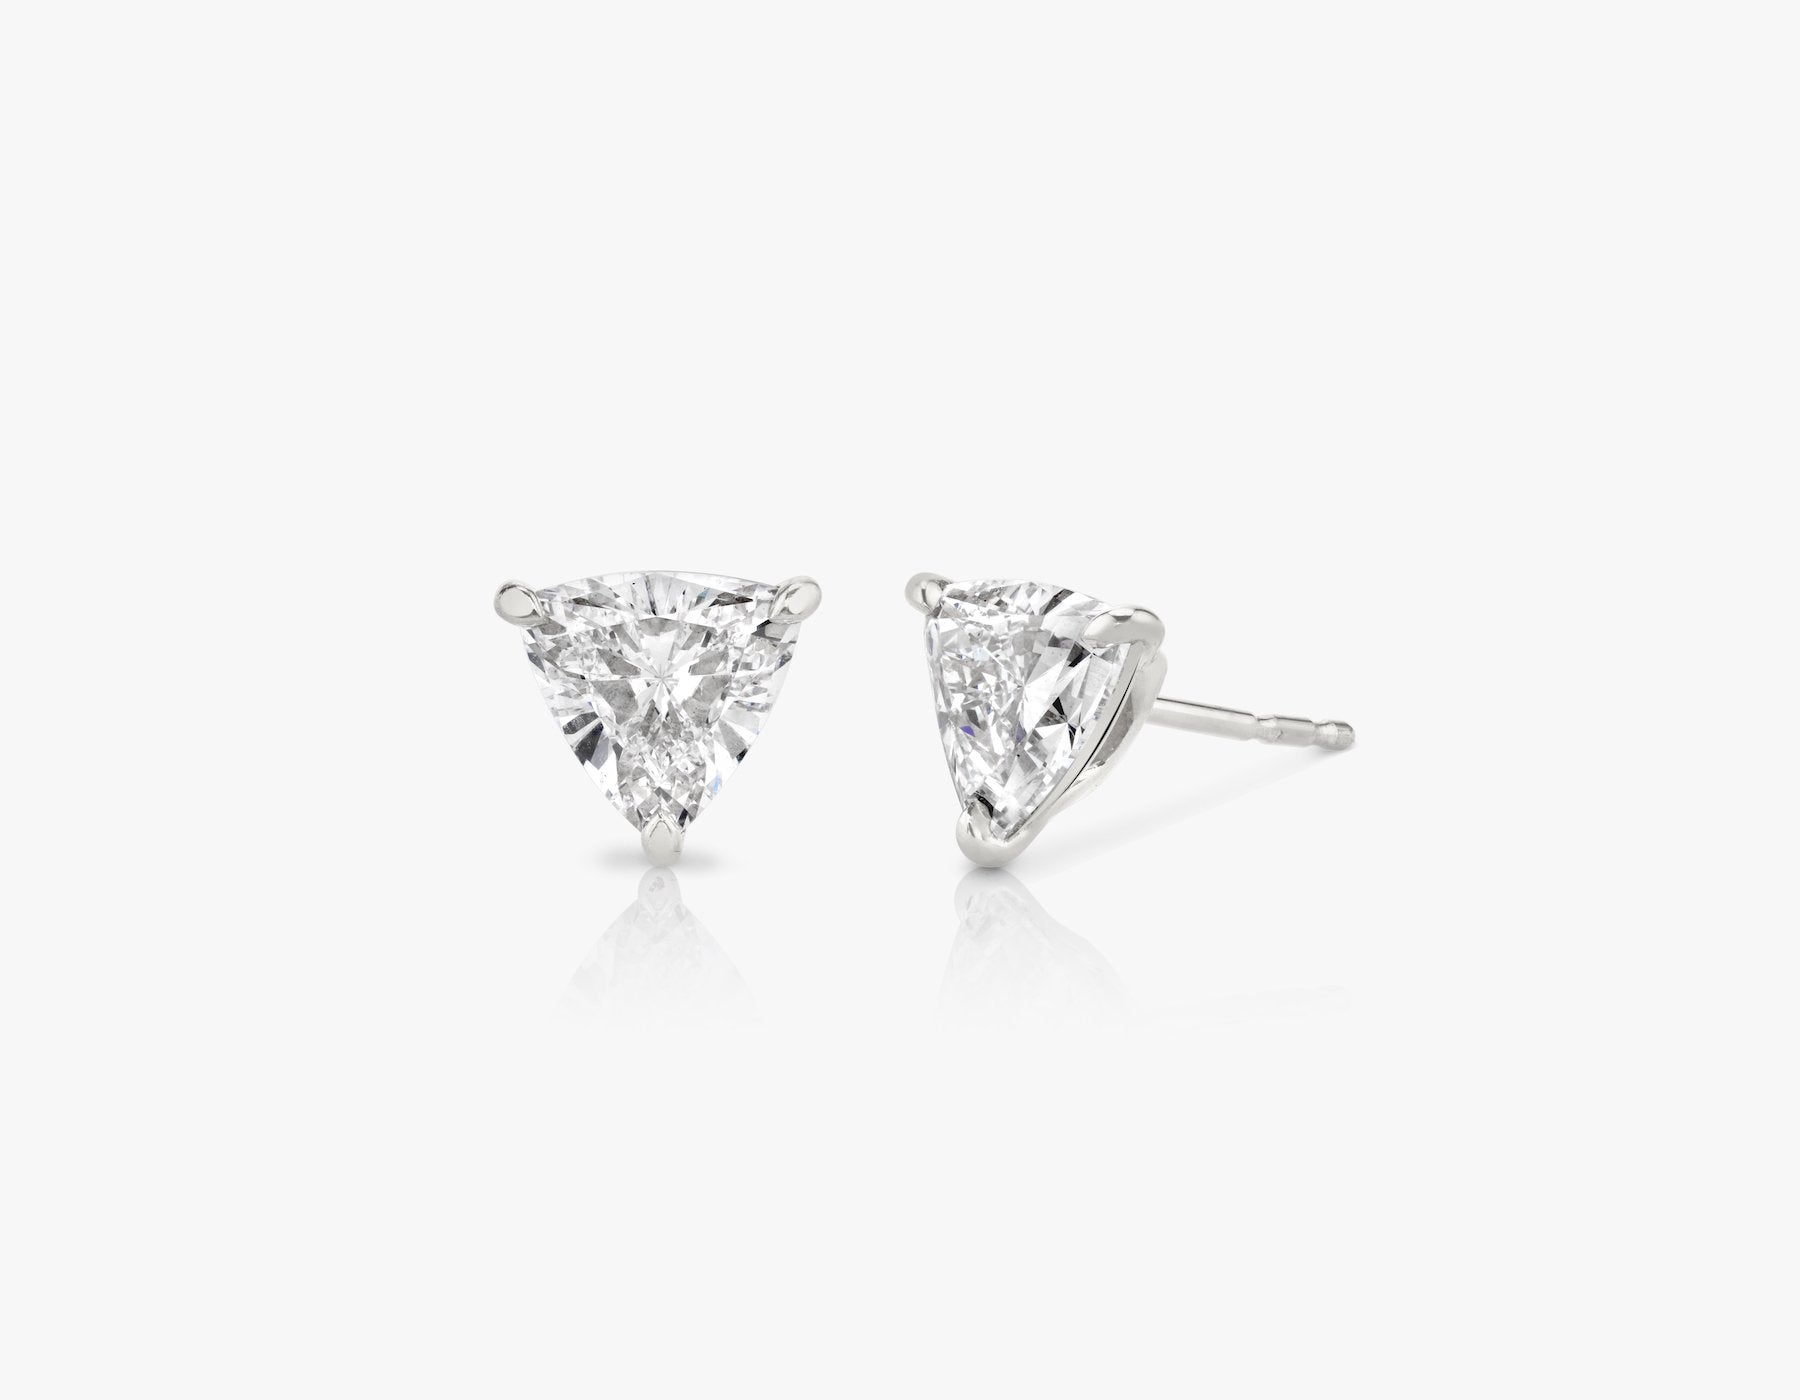 Vrai 14k solid gold Solitaire Trillion Diamond Studs sustainably created triangle diamonds prong set earrings, 14K White Gold